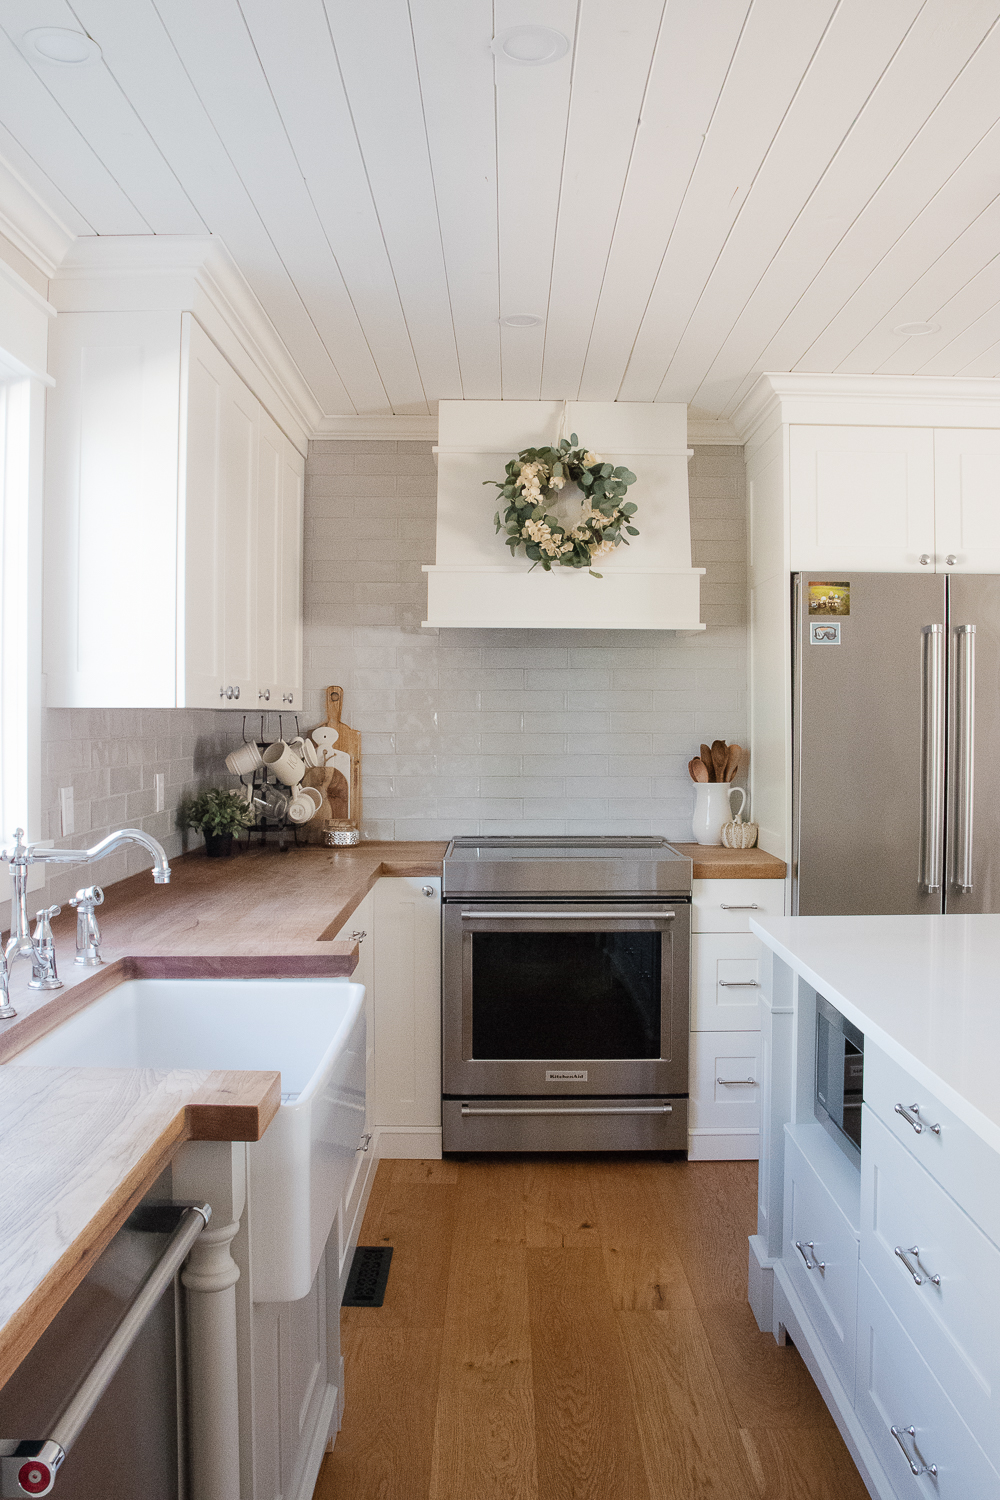 white kitchen cabinets, grey subway tile, wood counters